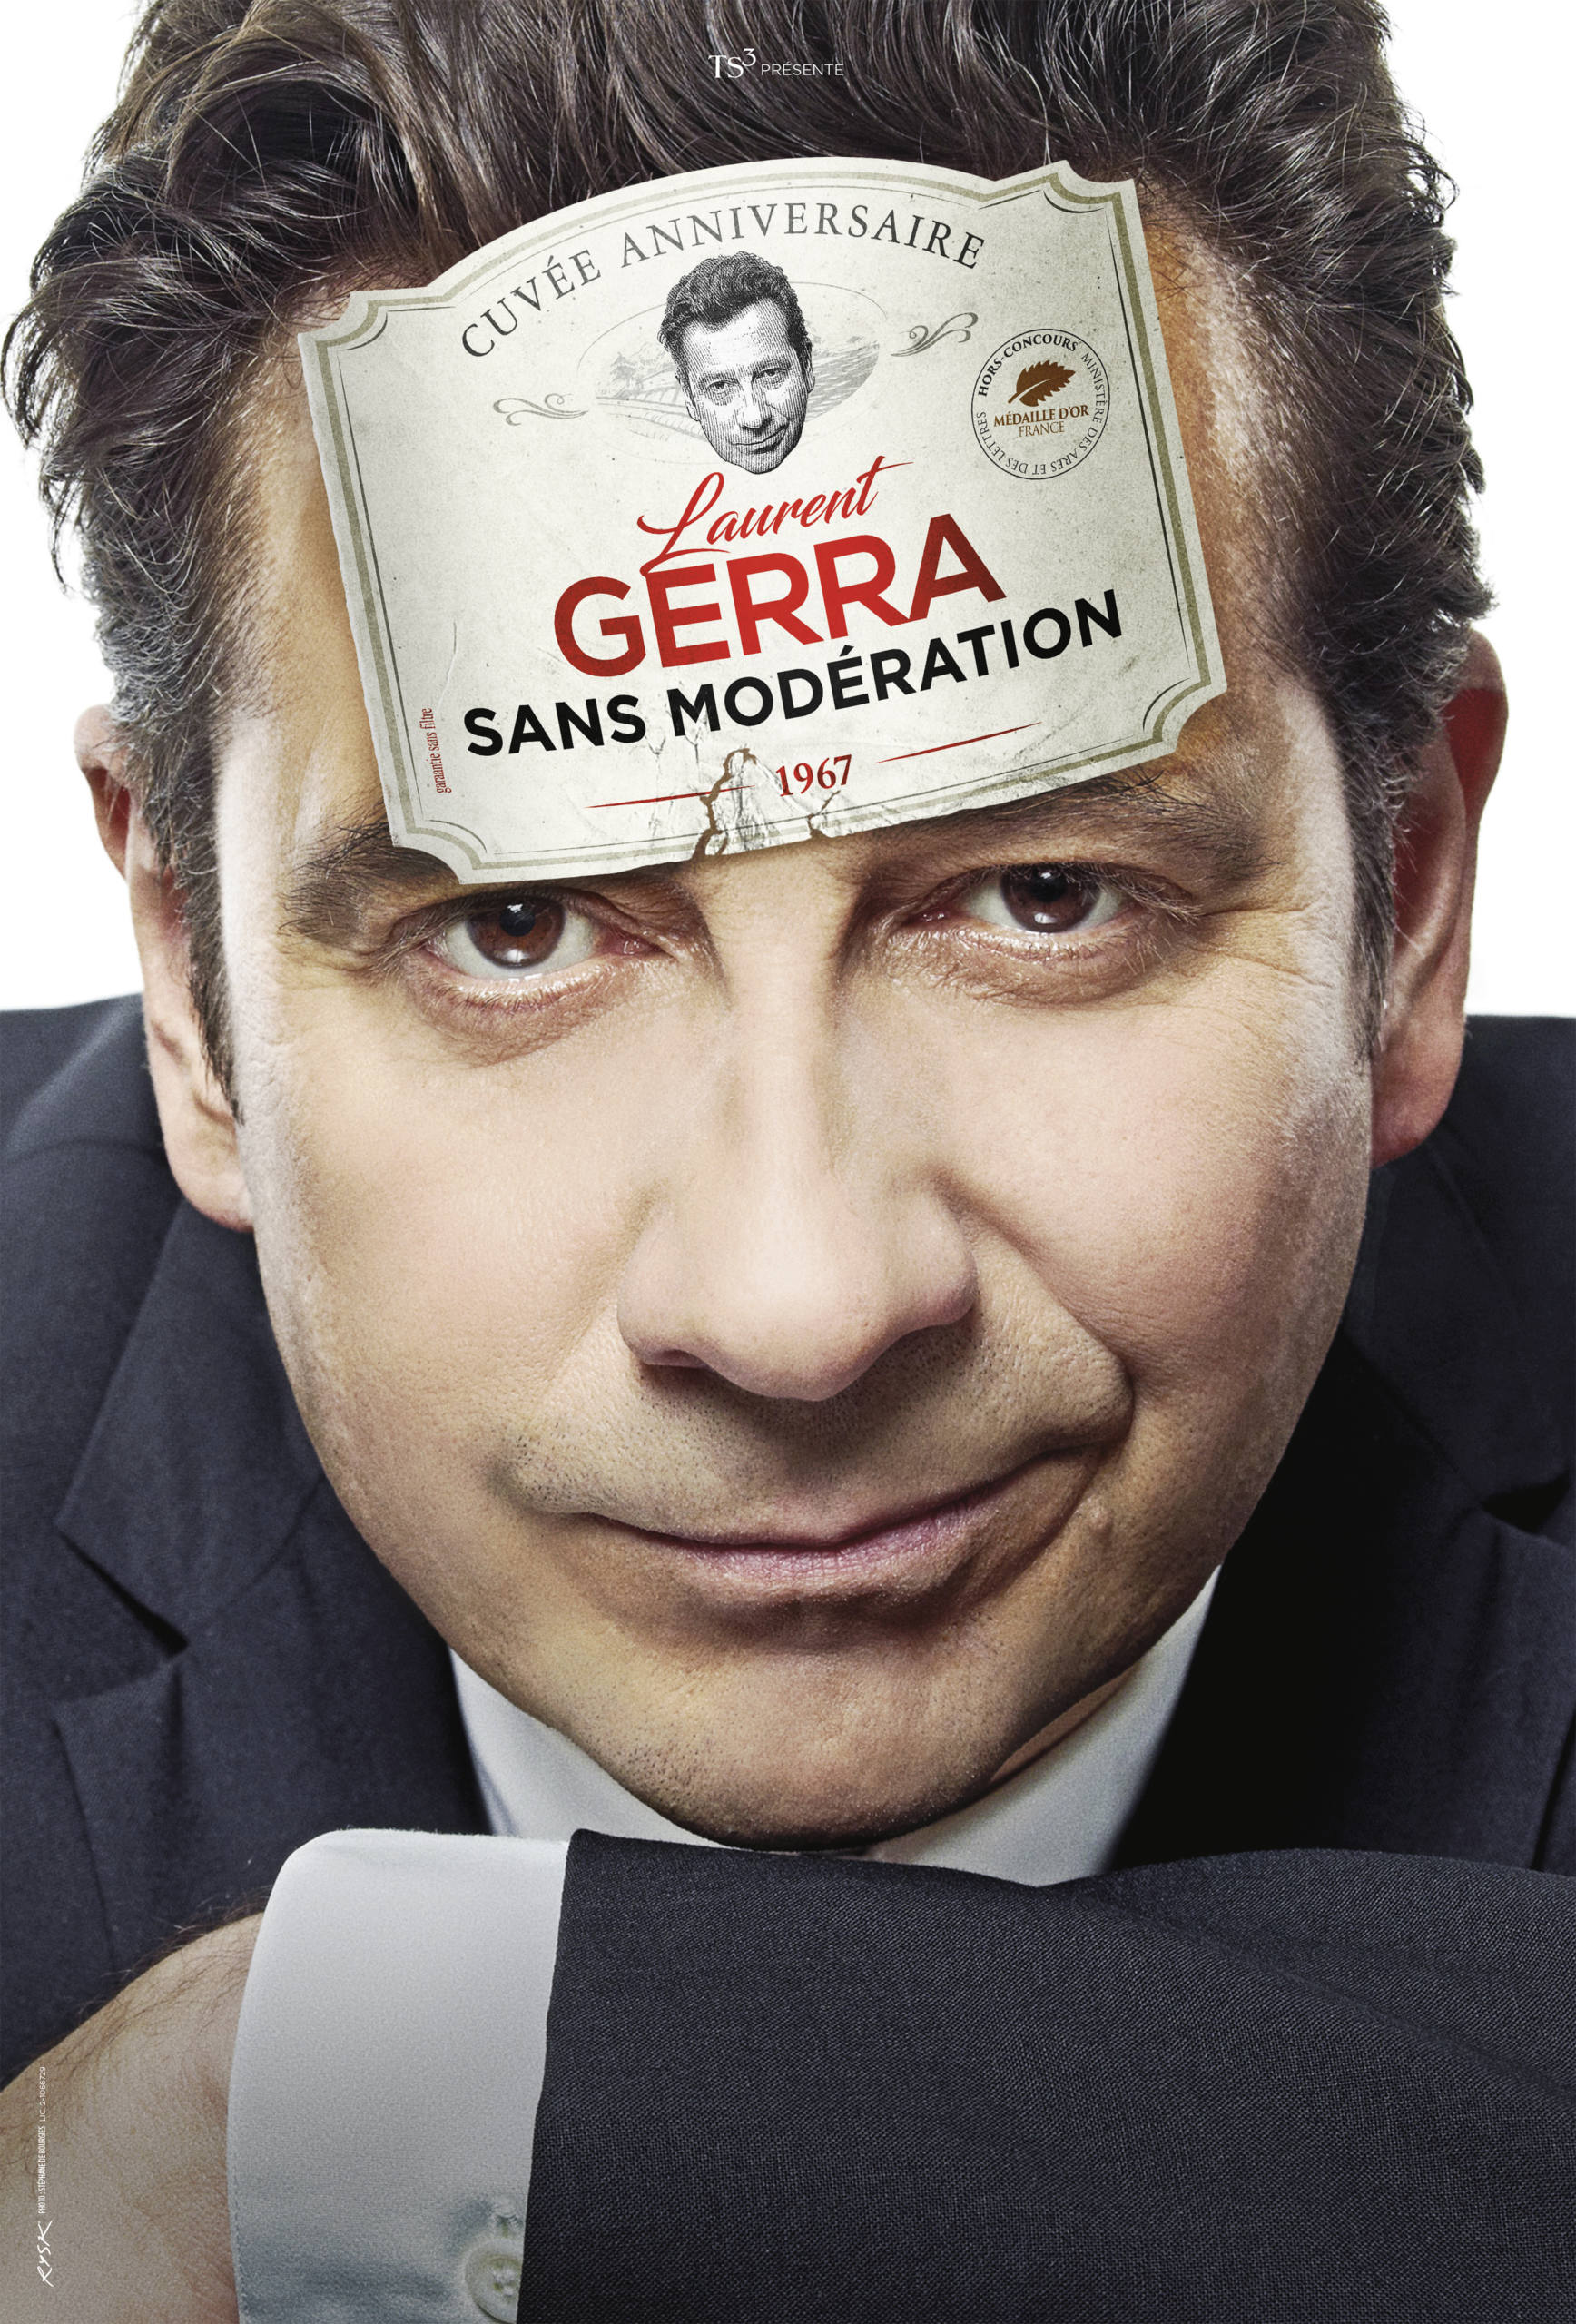 Laurent Gerra - Sans Modération REPORT DU 27 MAI 2020 2021-04-23